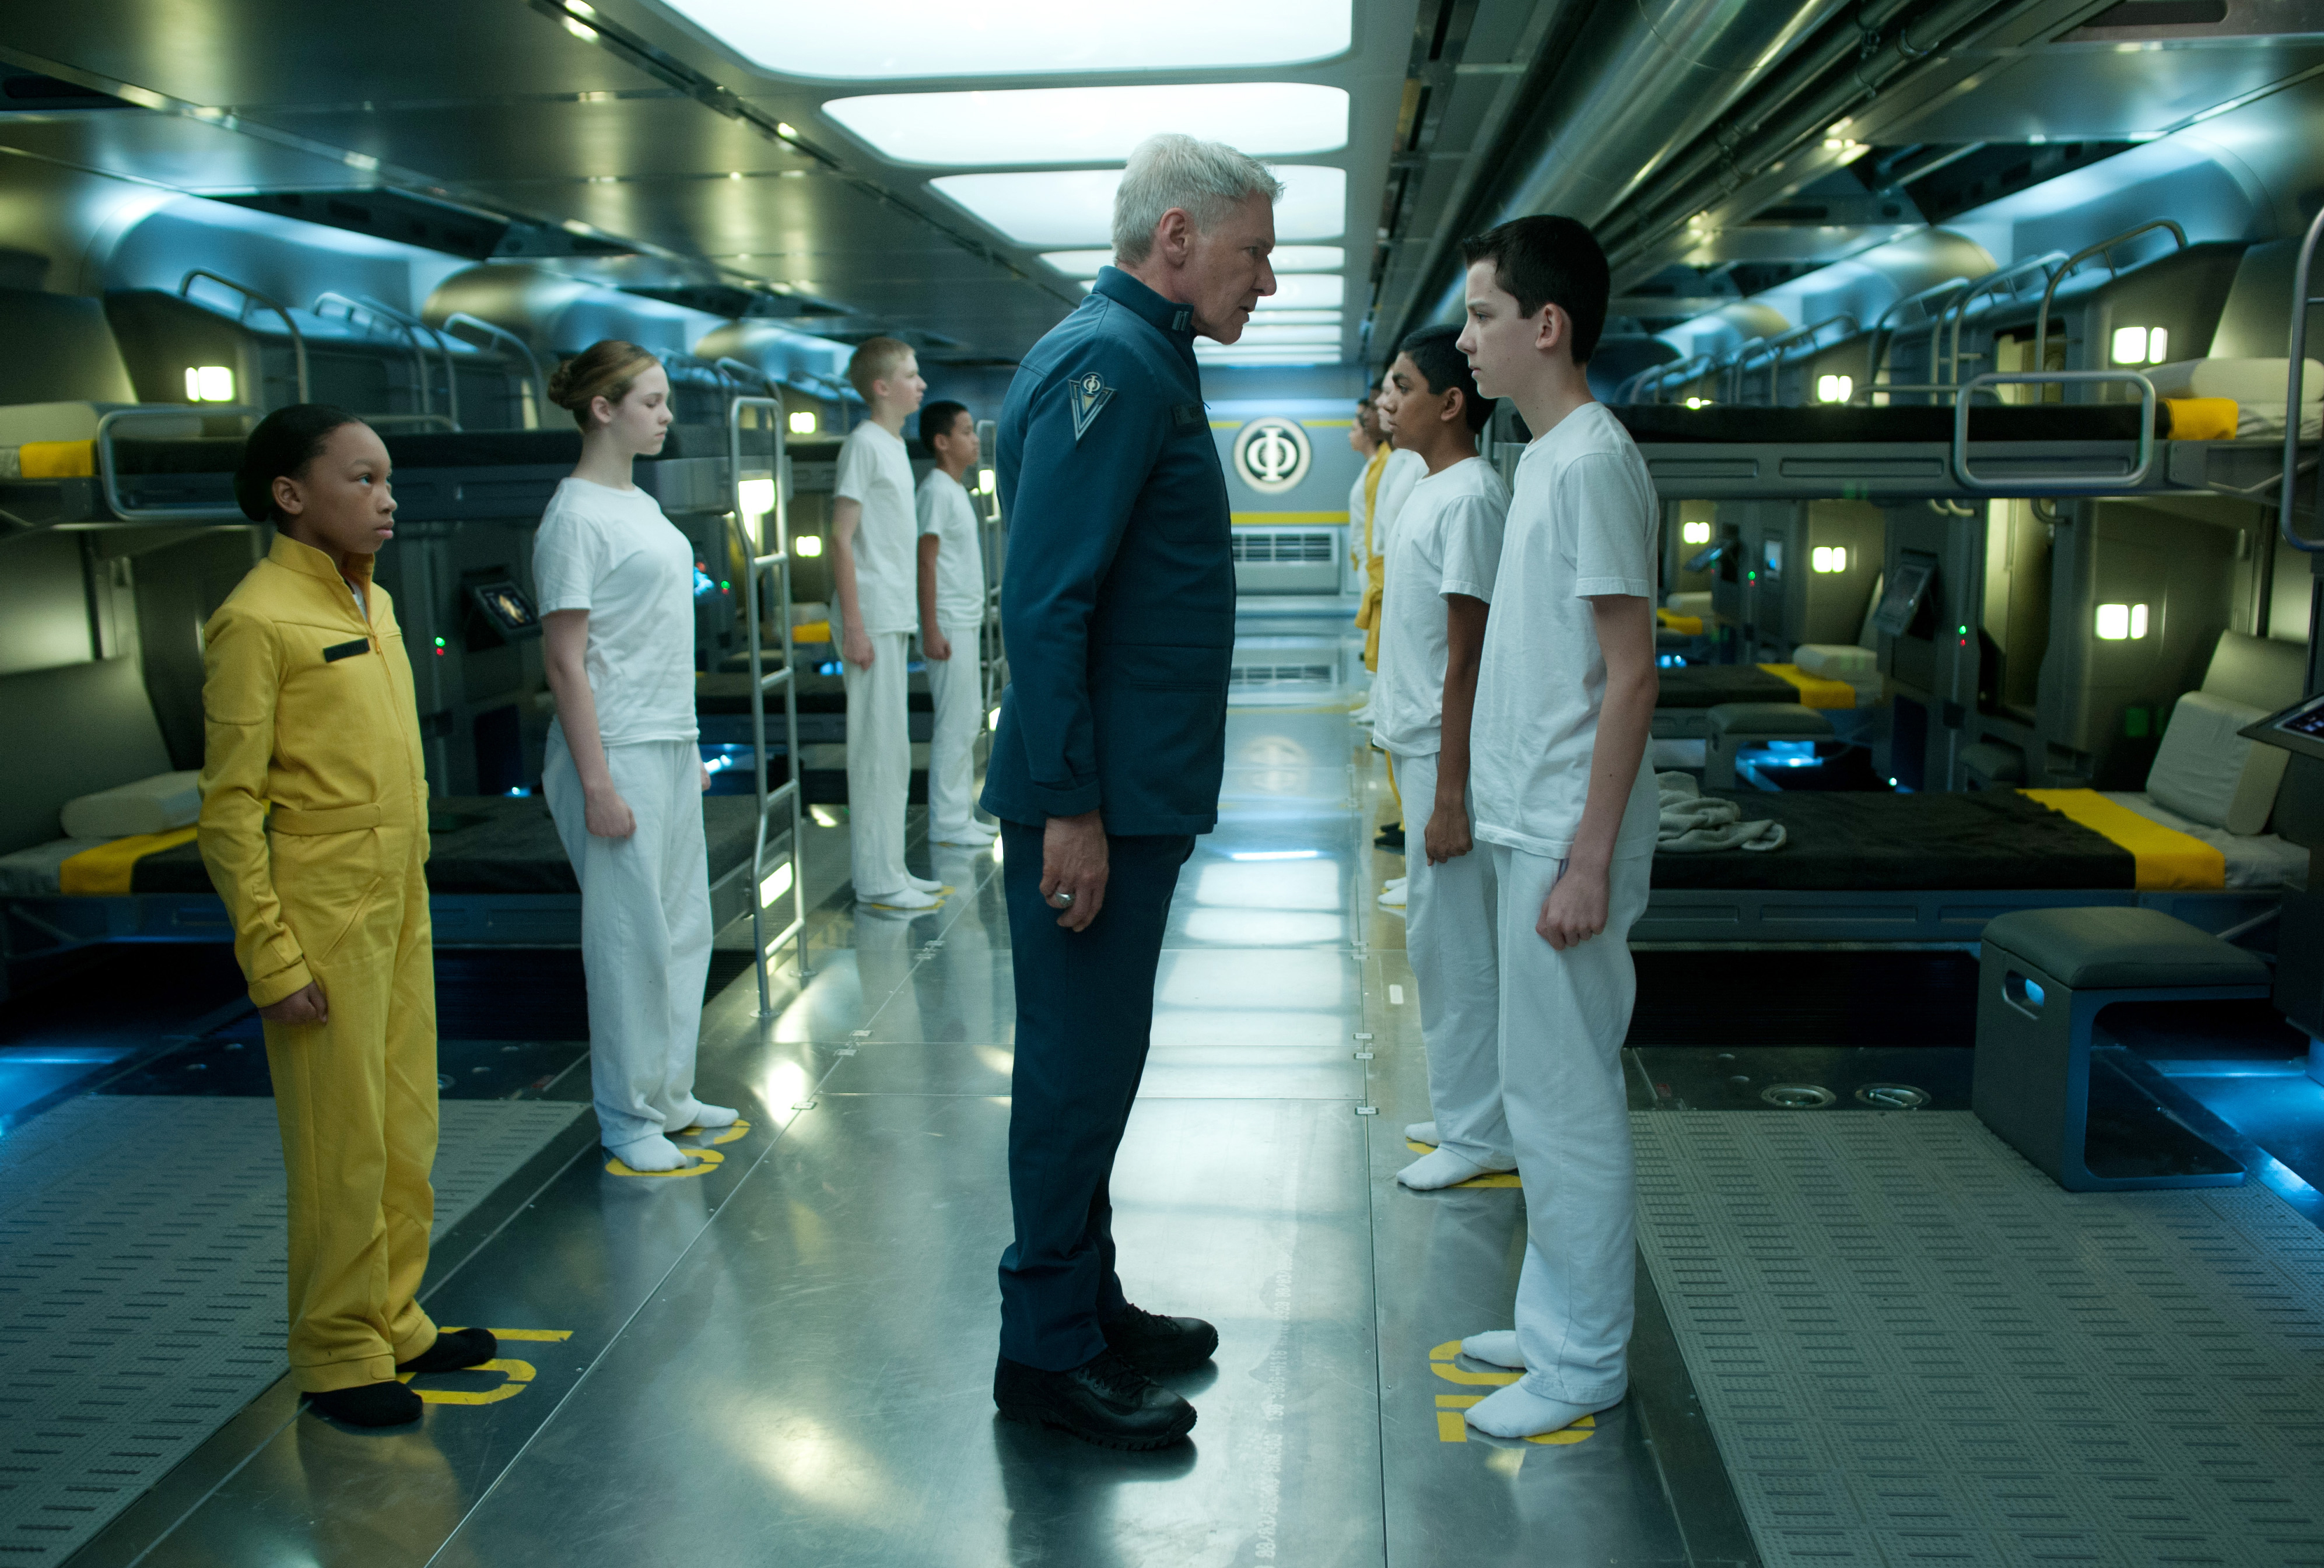 Sneak peek: Ender's Game